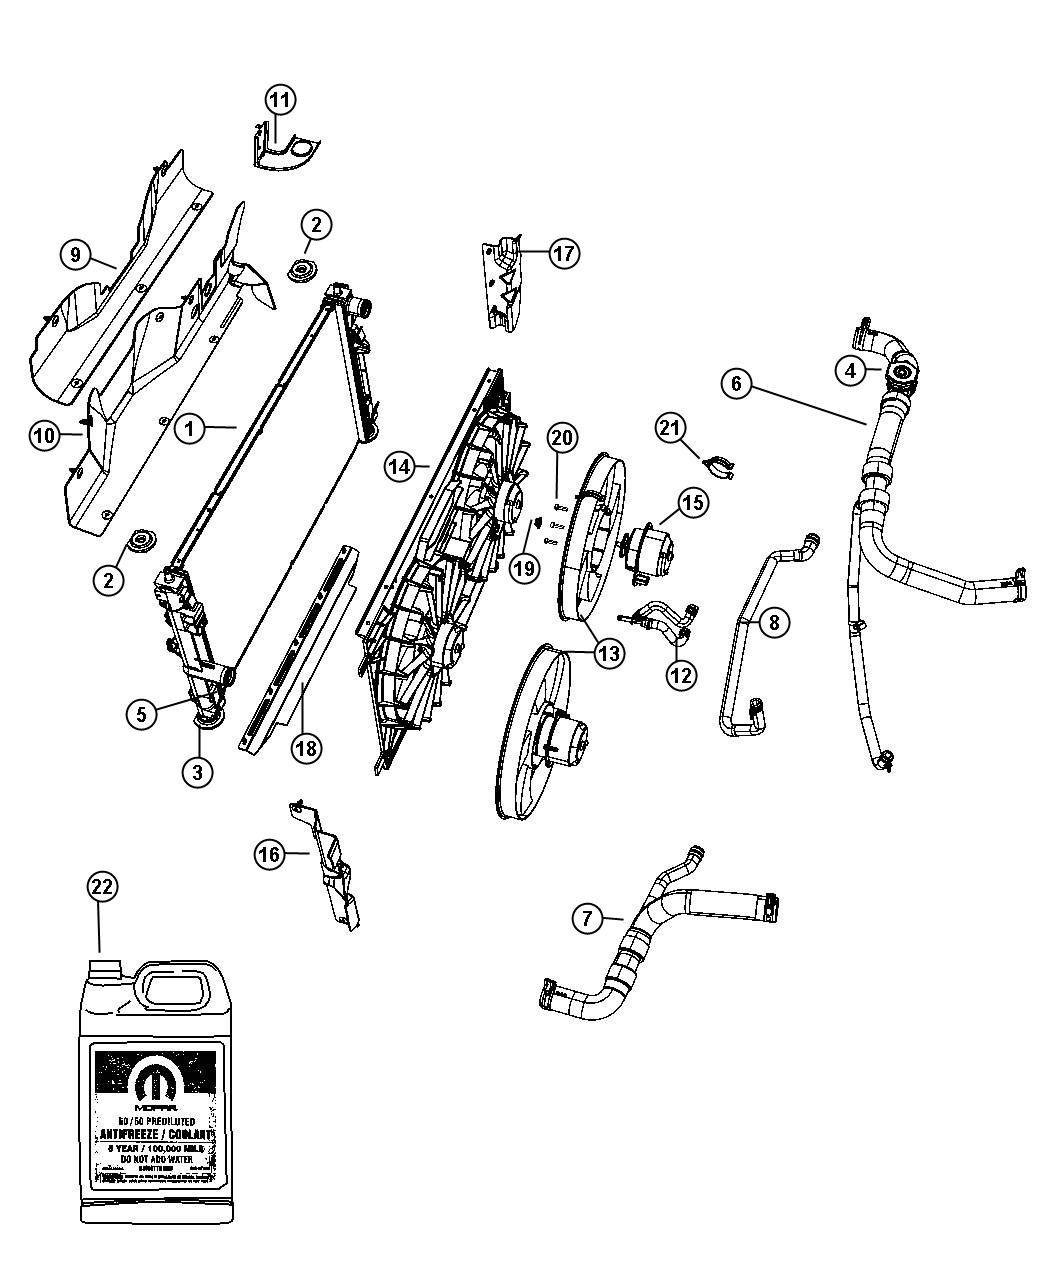 2001 Honda Rubicon Wiring Diagram, 2001, Free Engine Image